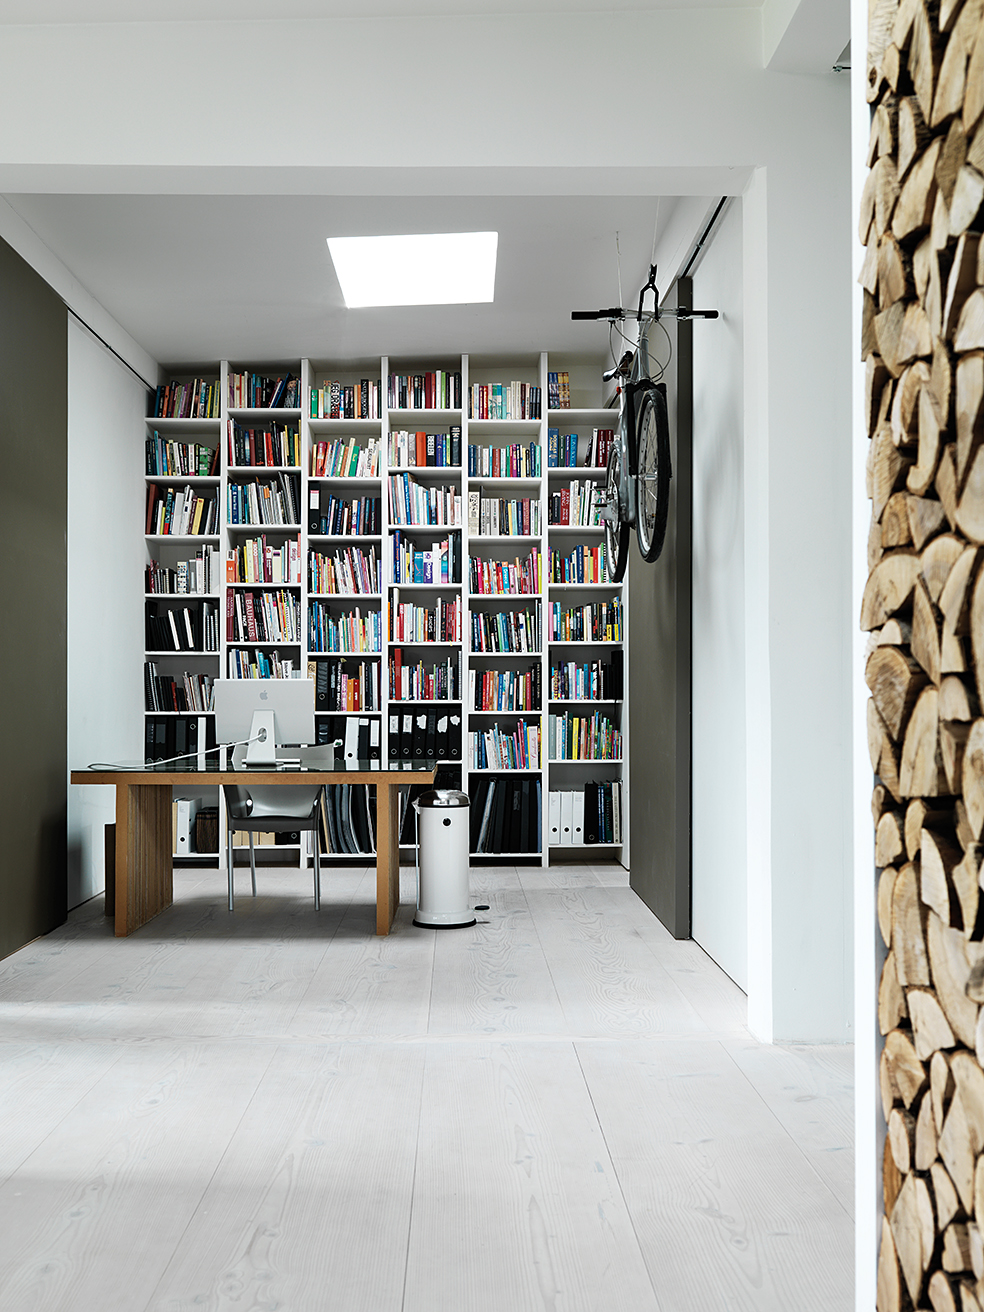 Morten Bo Jensen's Home Tour on Designsetter.de Minimalist Design Blog